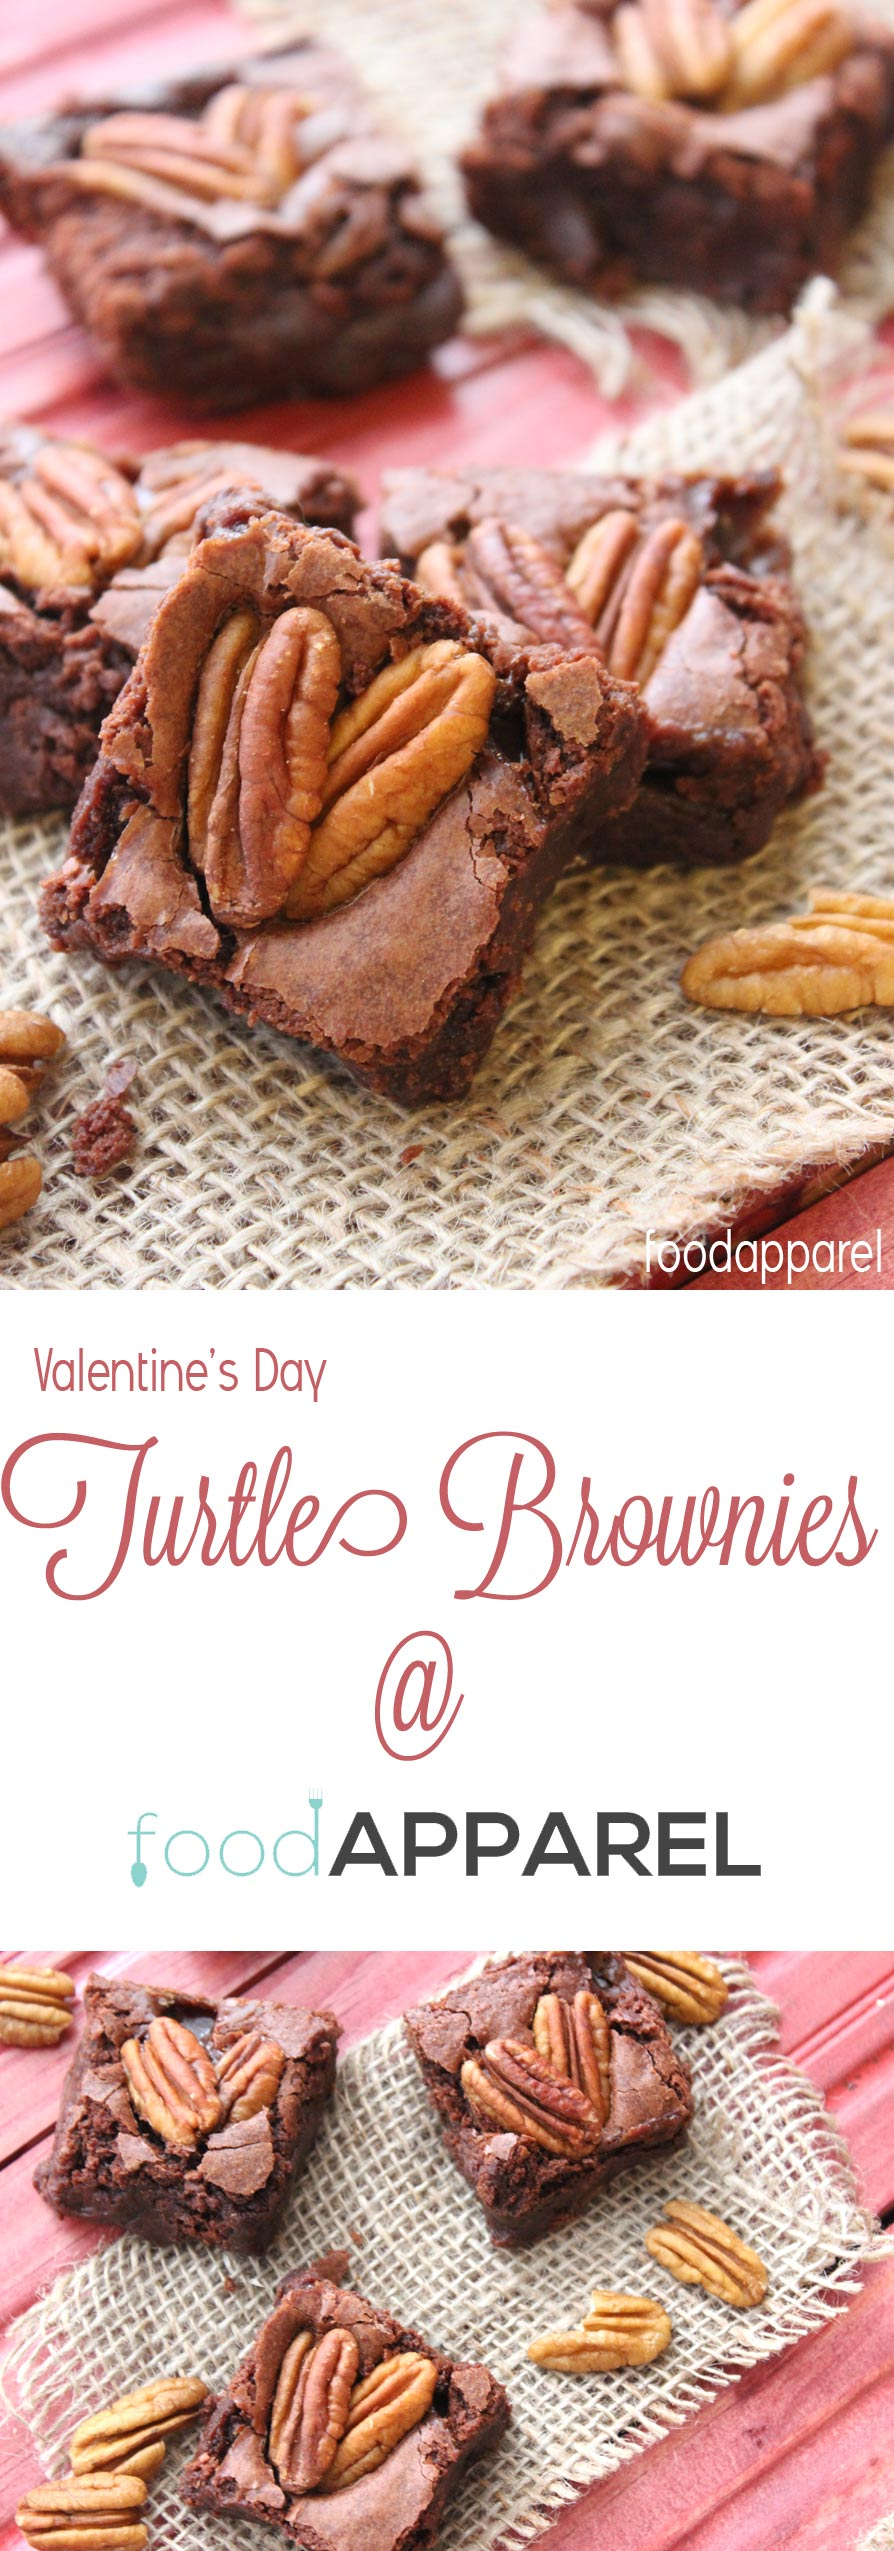 These Valentine's Day Heart Turtle Brownies are sure to win their way into someone's heart! Caramely, chocolately and delicious! @foodapparel